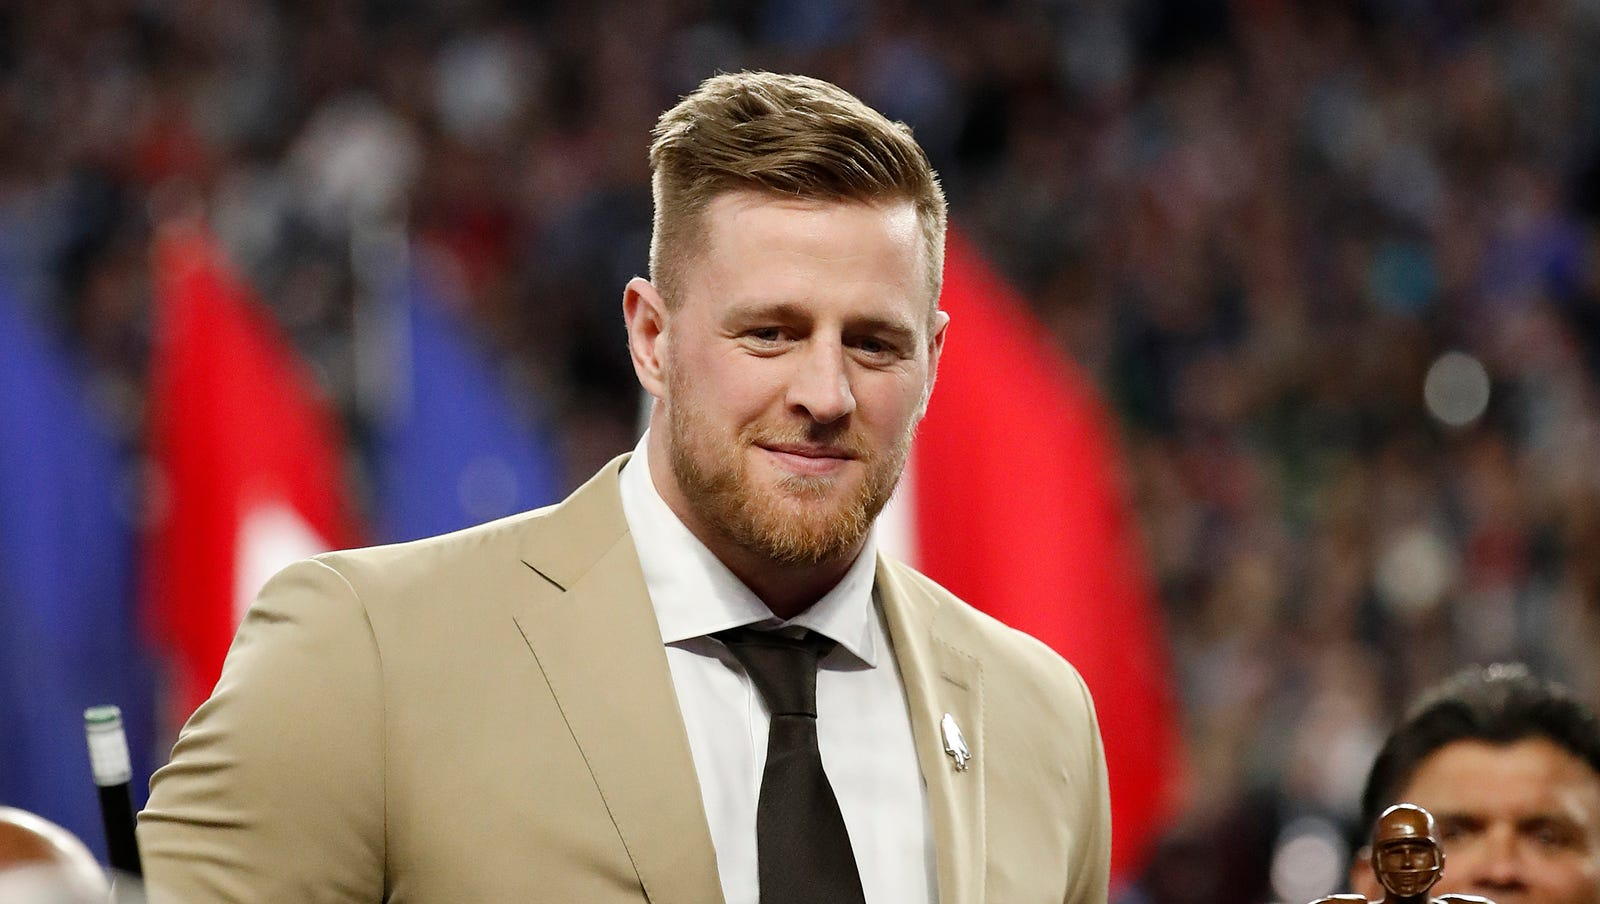 J.J. Watt donates $10,000 to family of Appleton firefighter killed in shooting